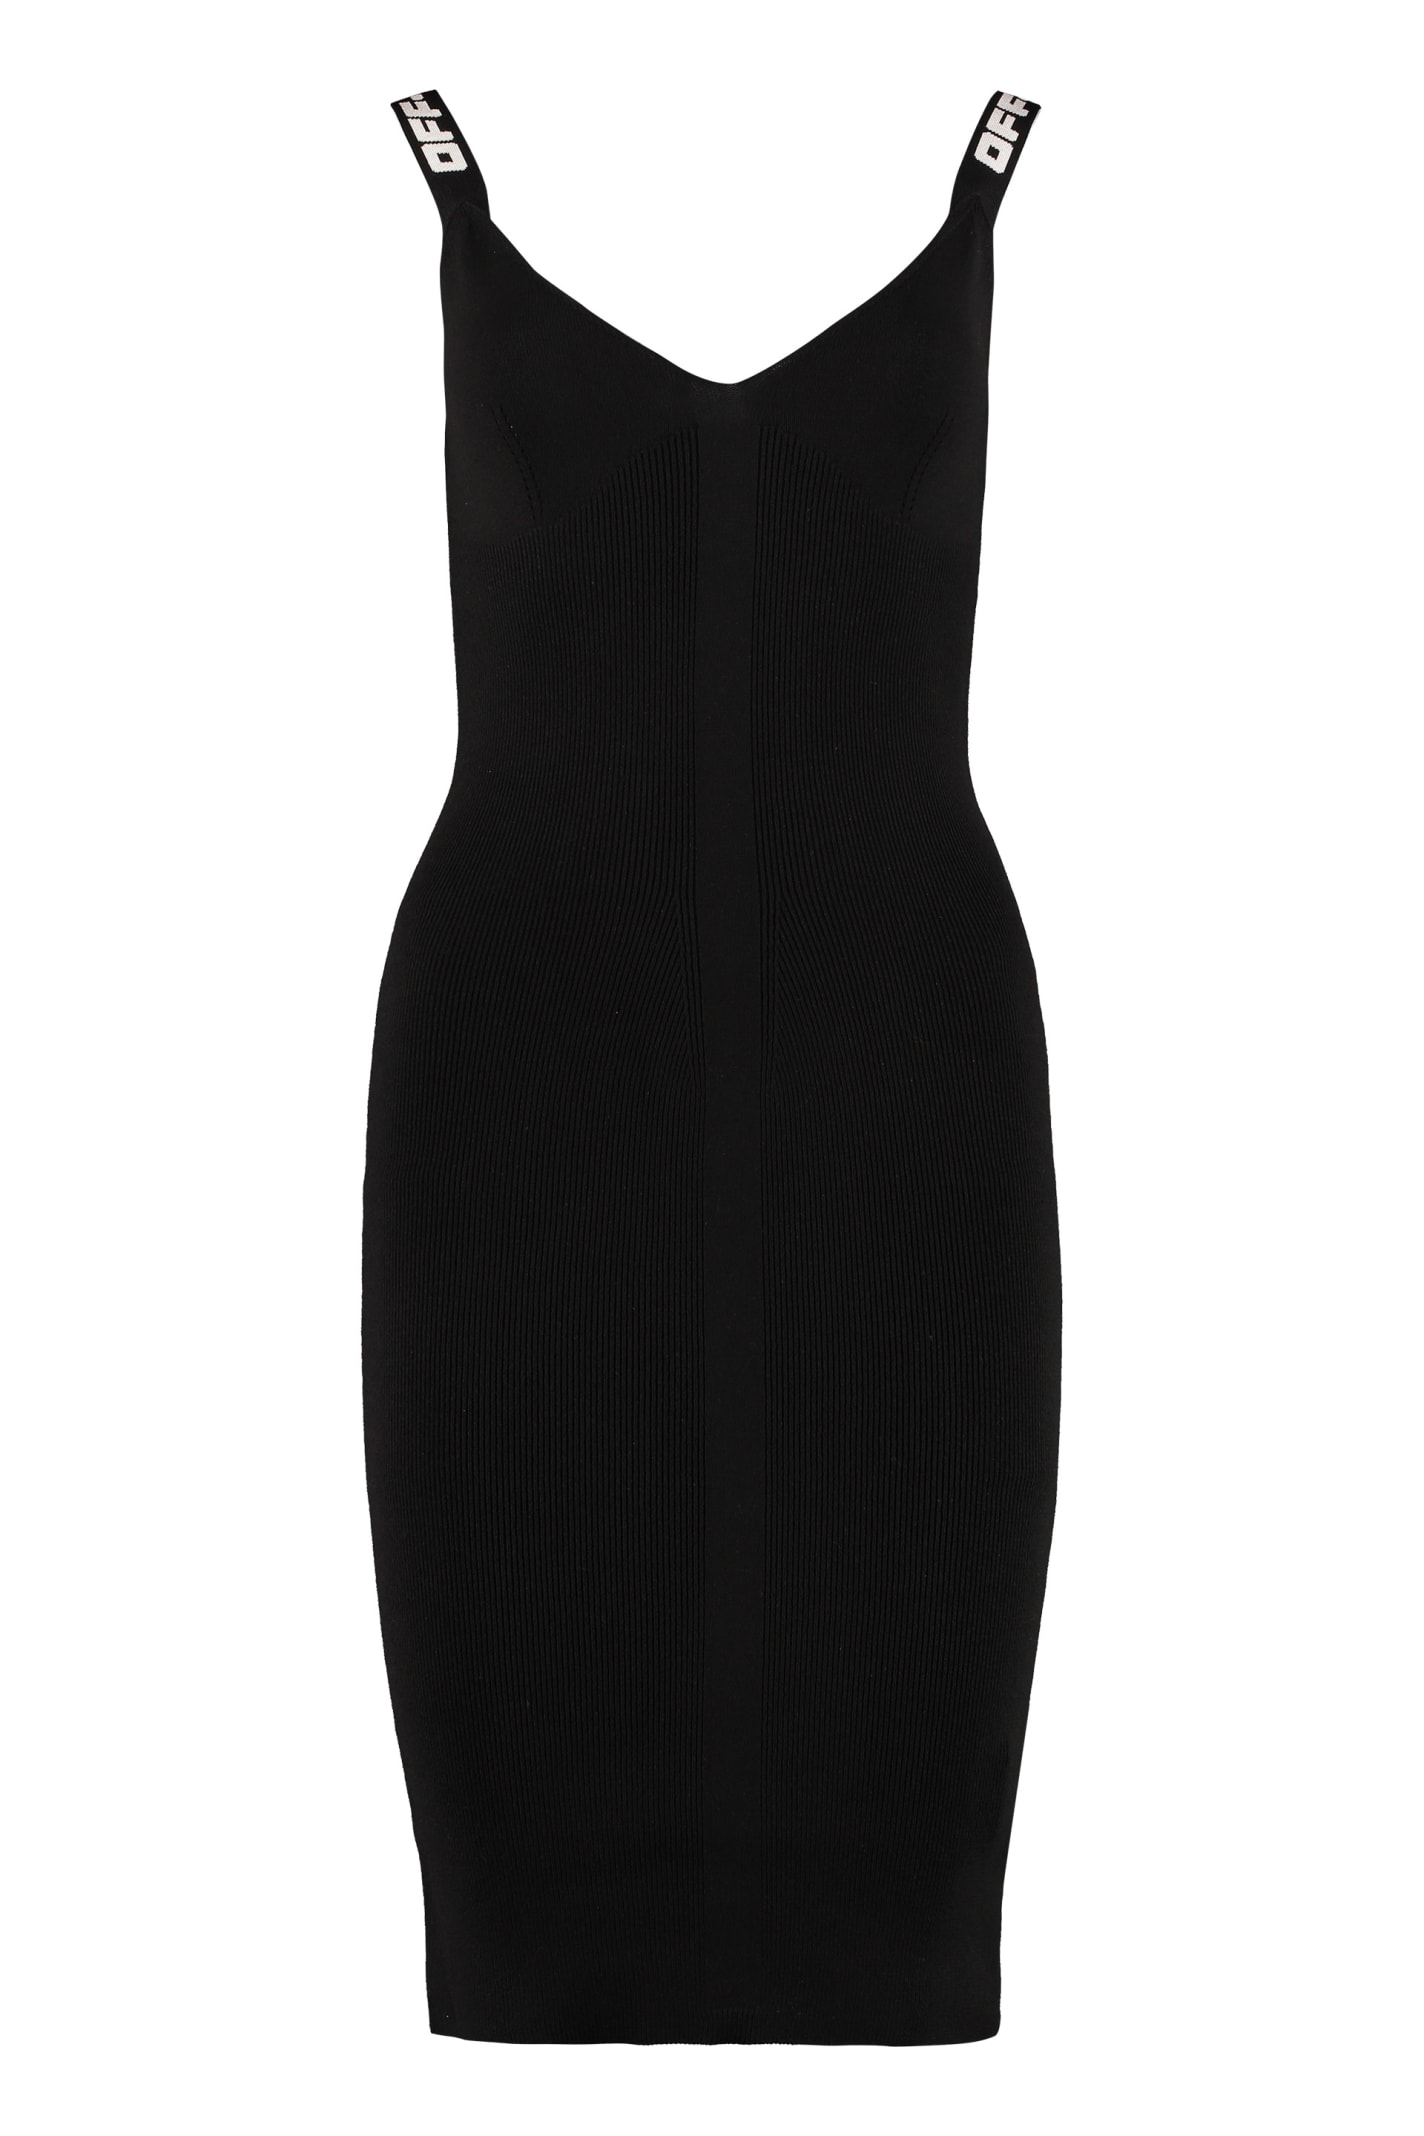 Buy Off-White Jersey Sheath Dress online, shop Off-White with free shipping